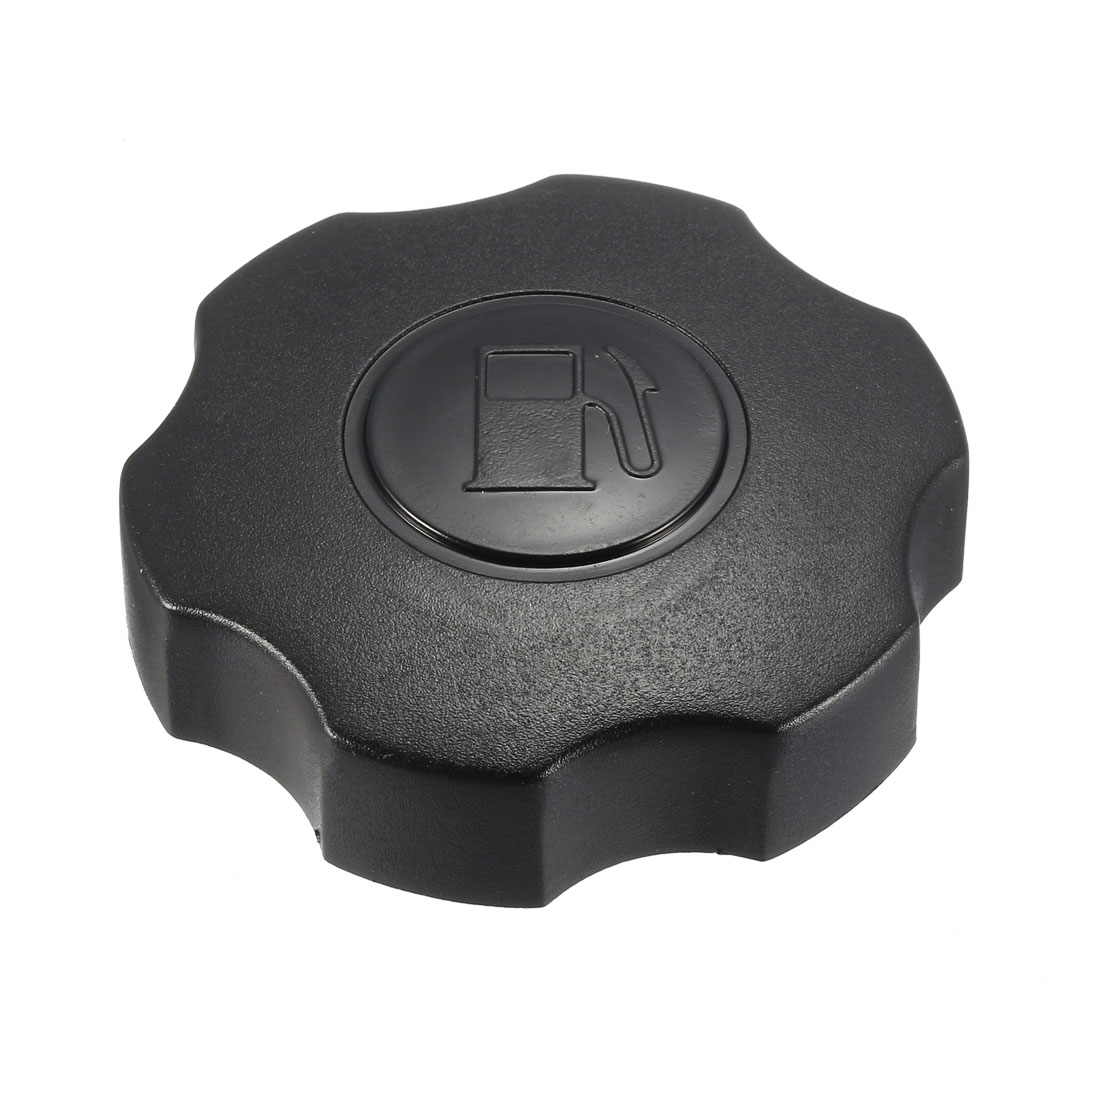 Replaces Fuel Tank Cap Fit for GX120 for GX160 for GX200 for GX390 Engine Motors